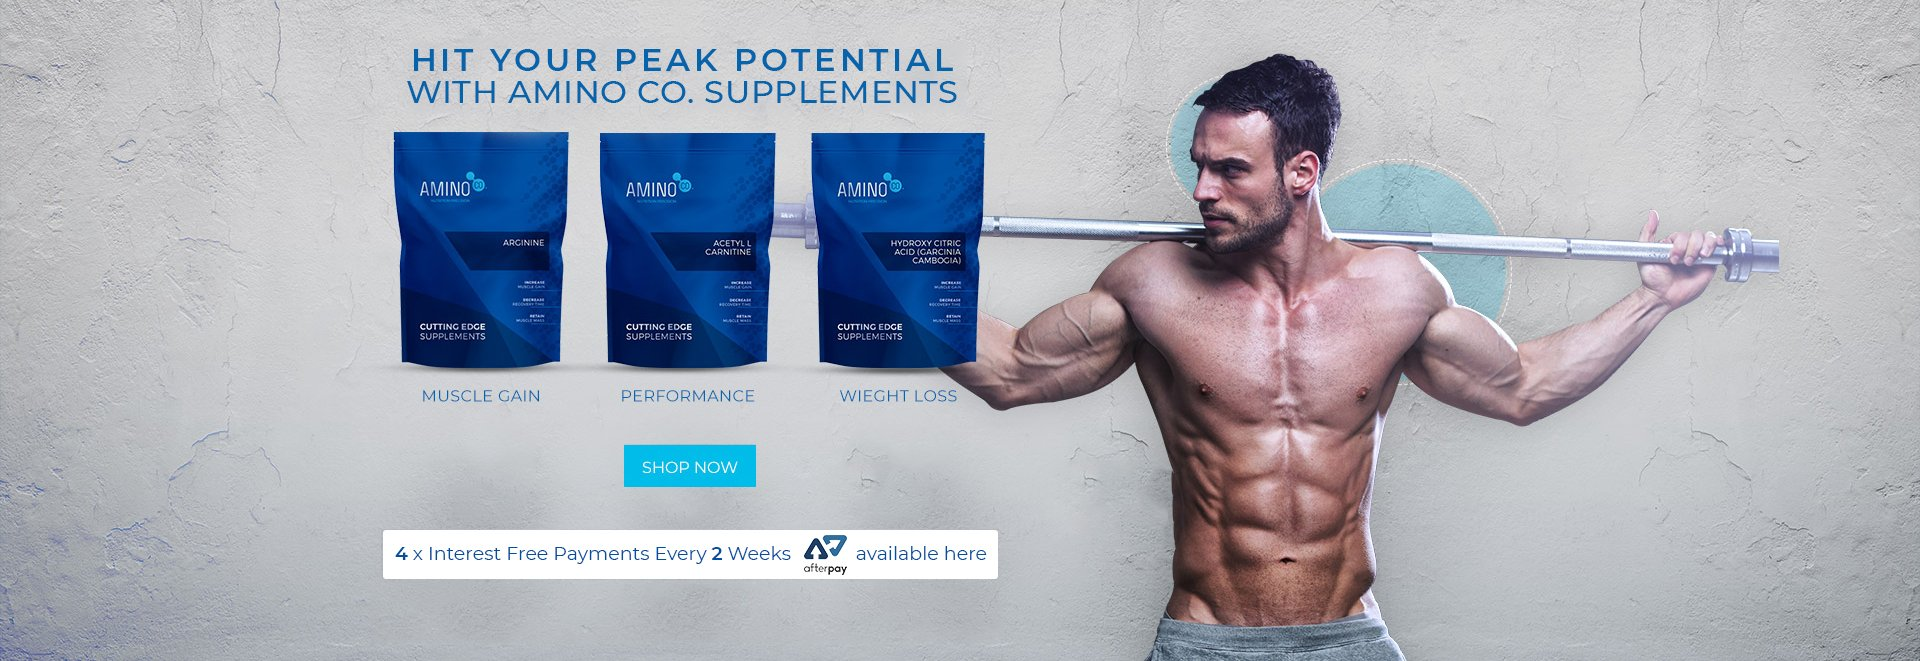 HIT YOUR PEAK POTENTIAL WITH AMINO CO. SUPPLEMENTS